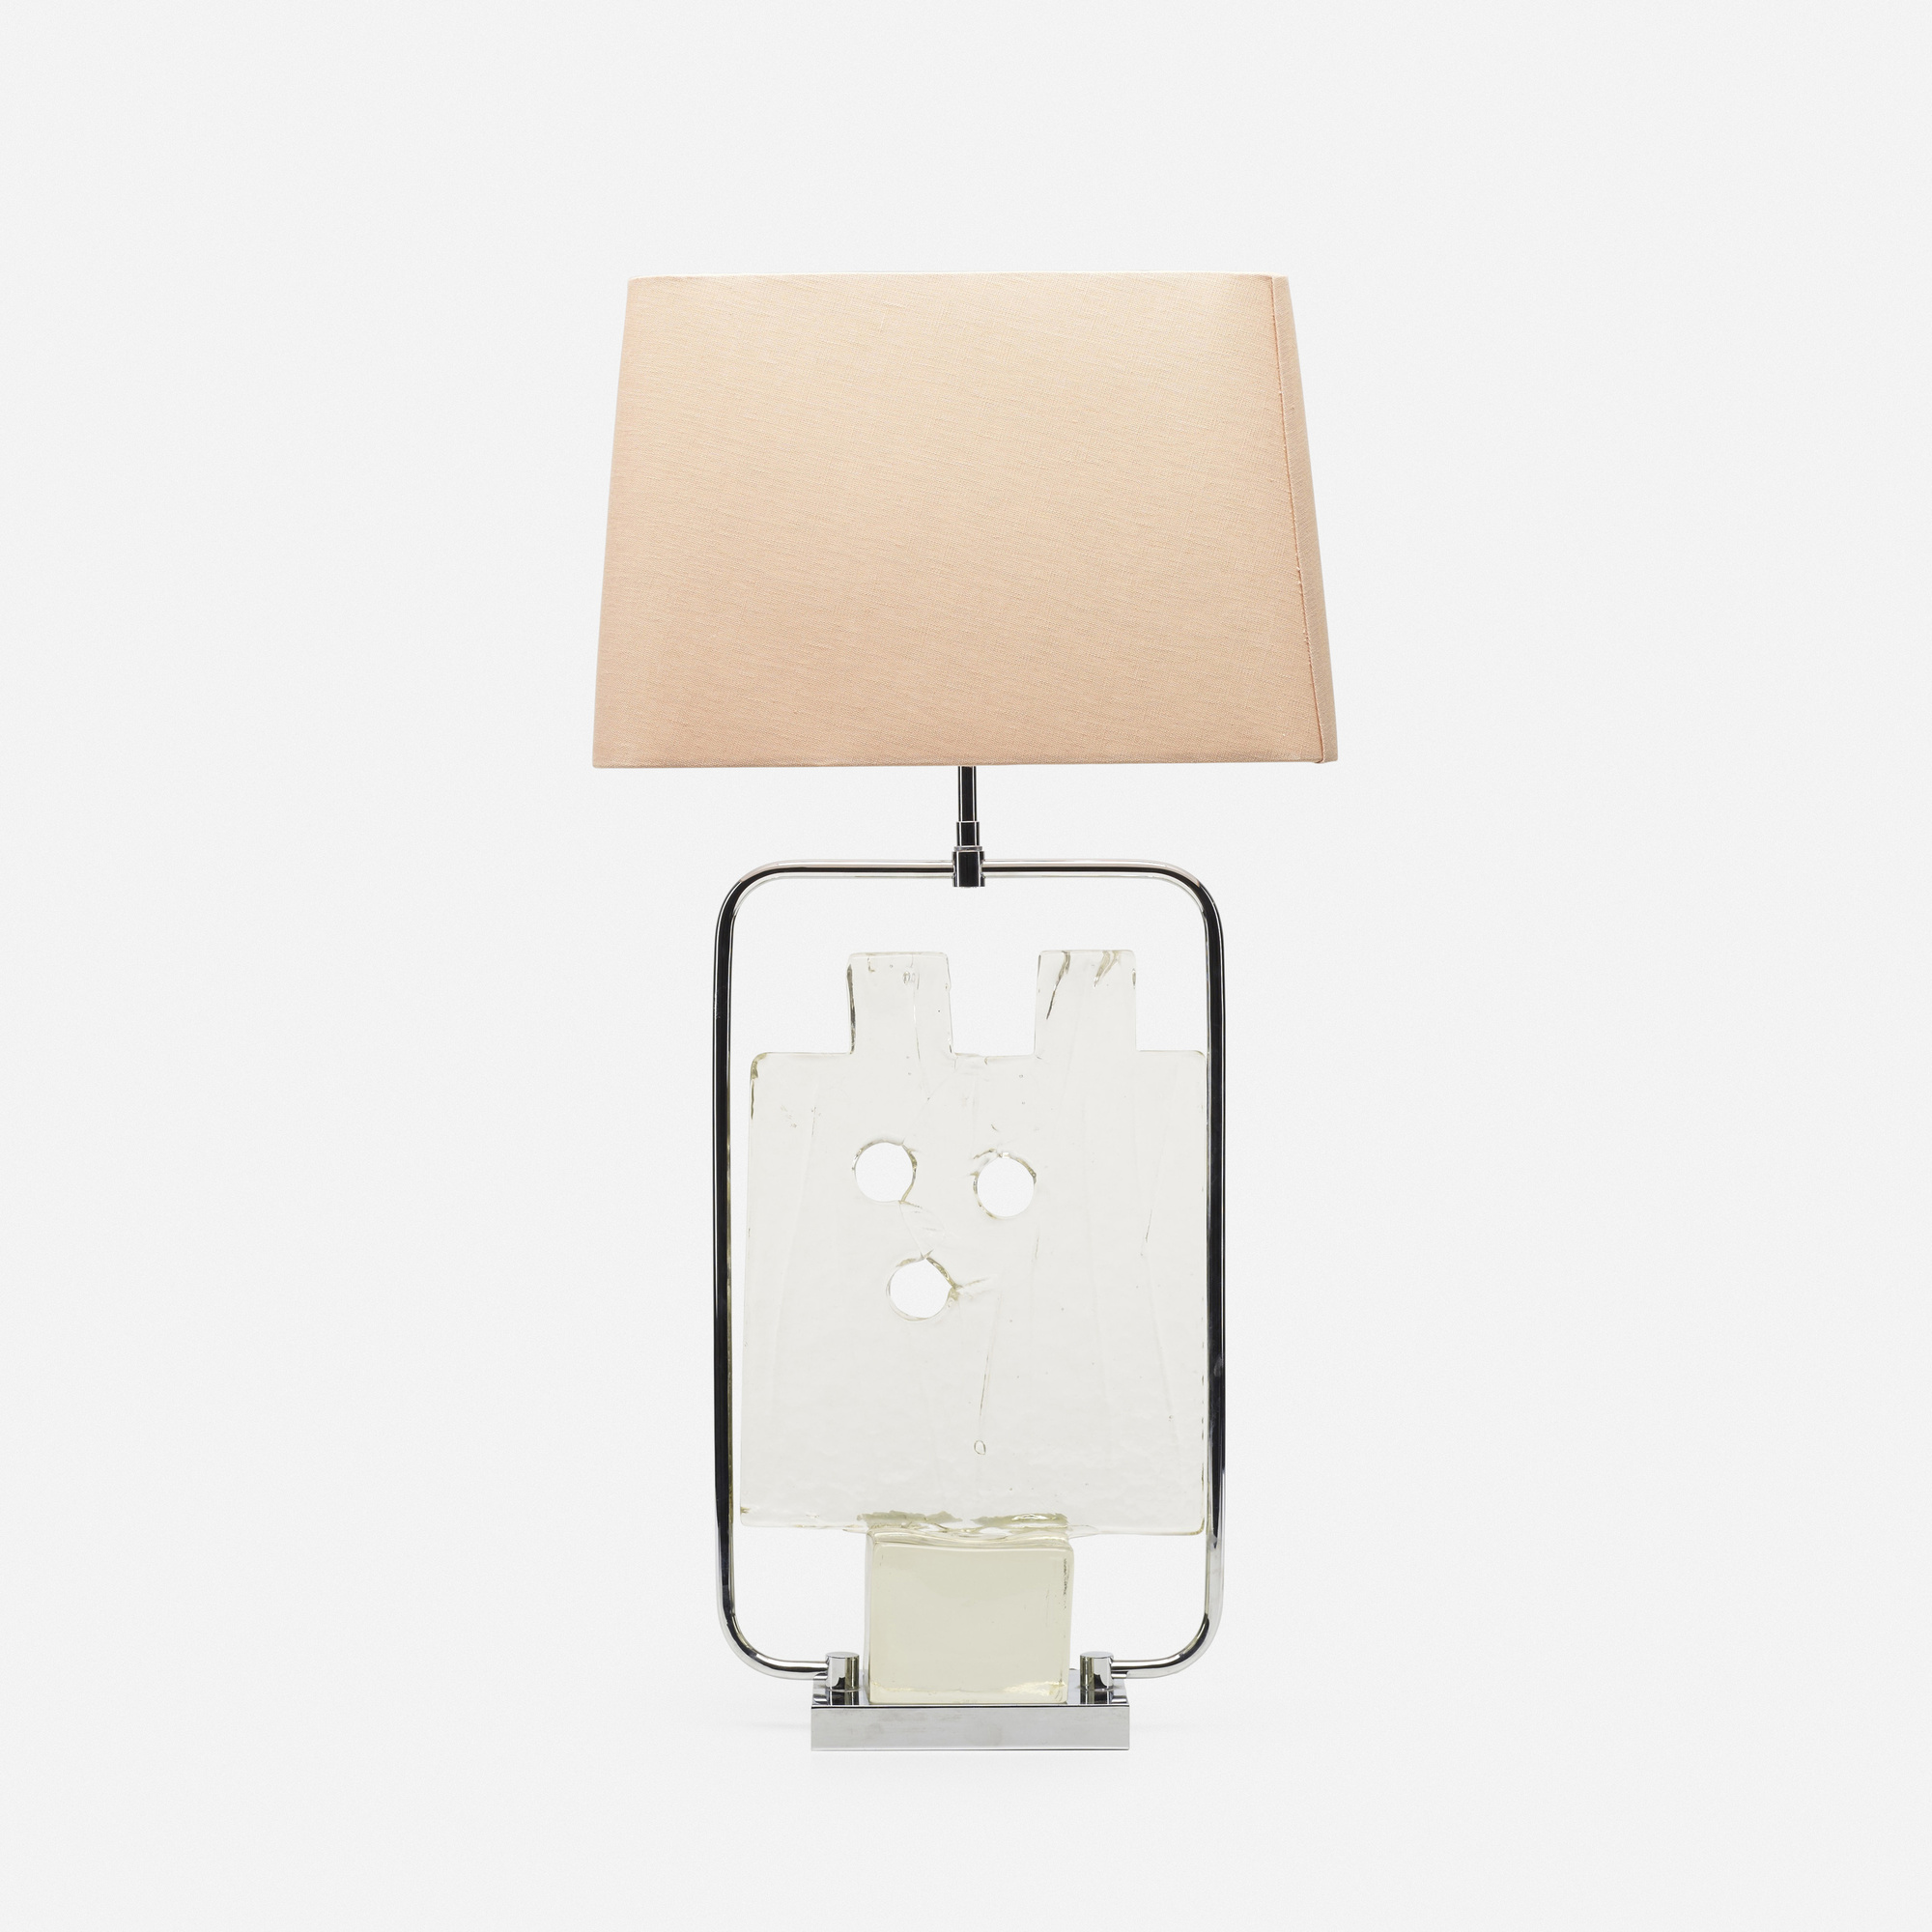 708: Salviati / table lamp (1 of 2)